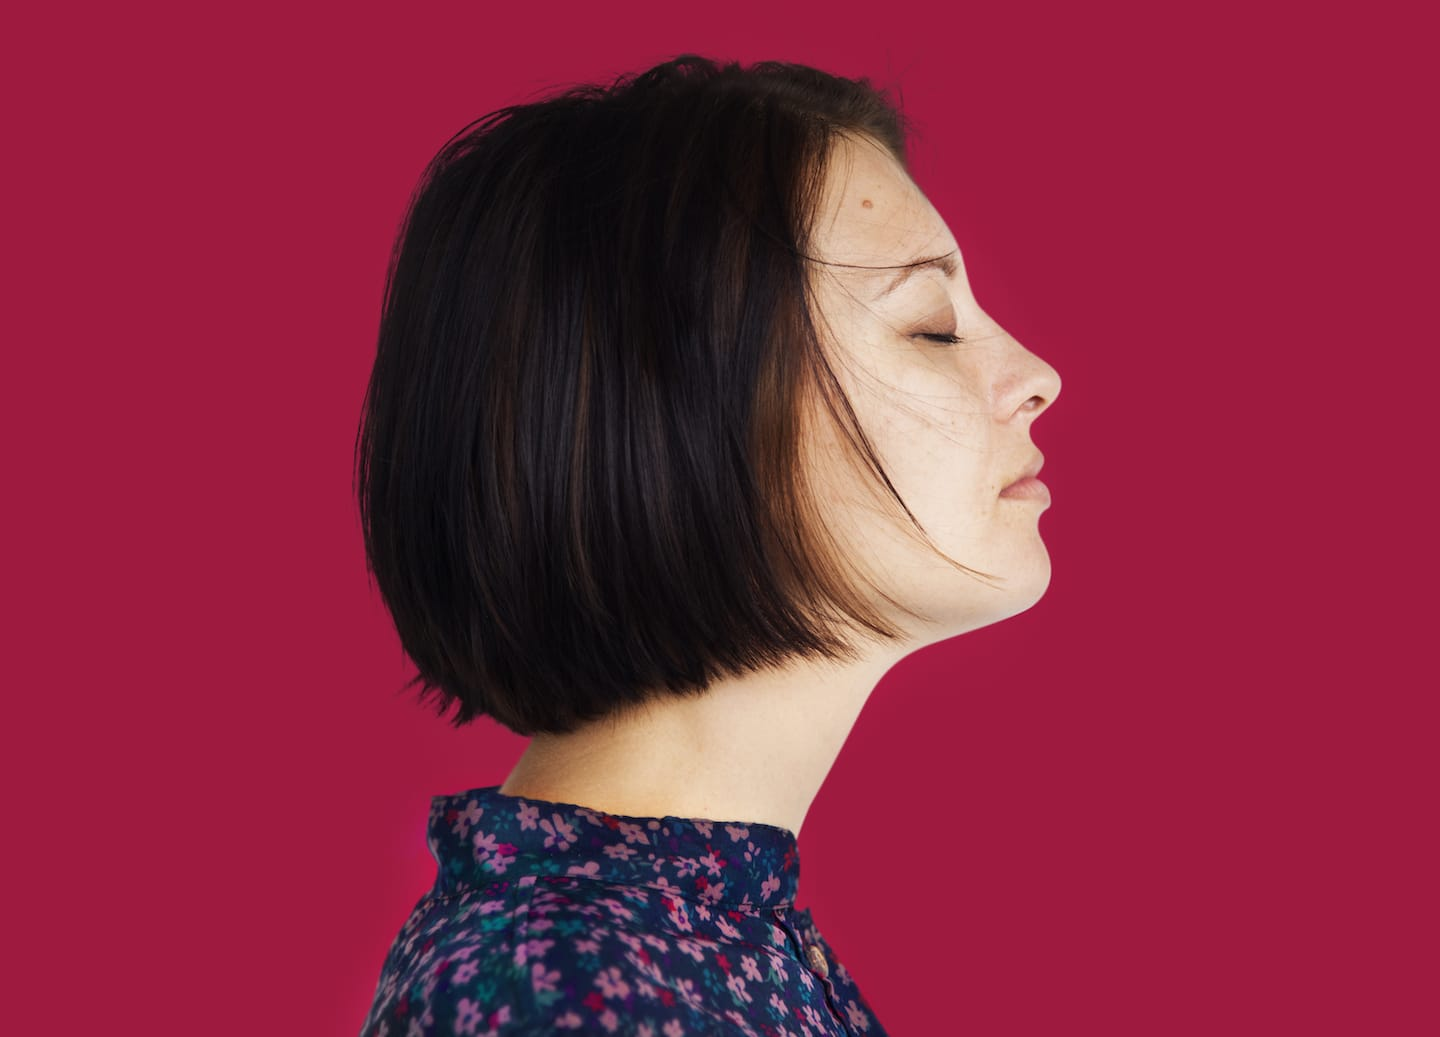 woman side view close eyes thinking concept PTKET4T